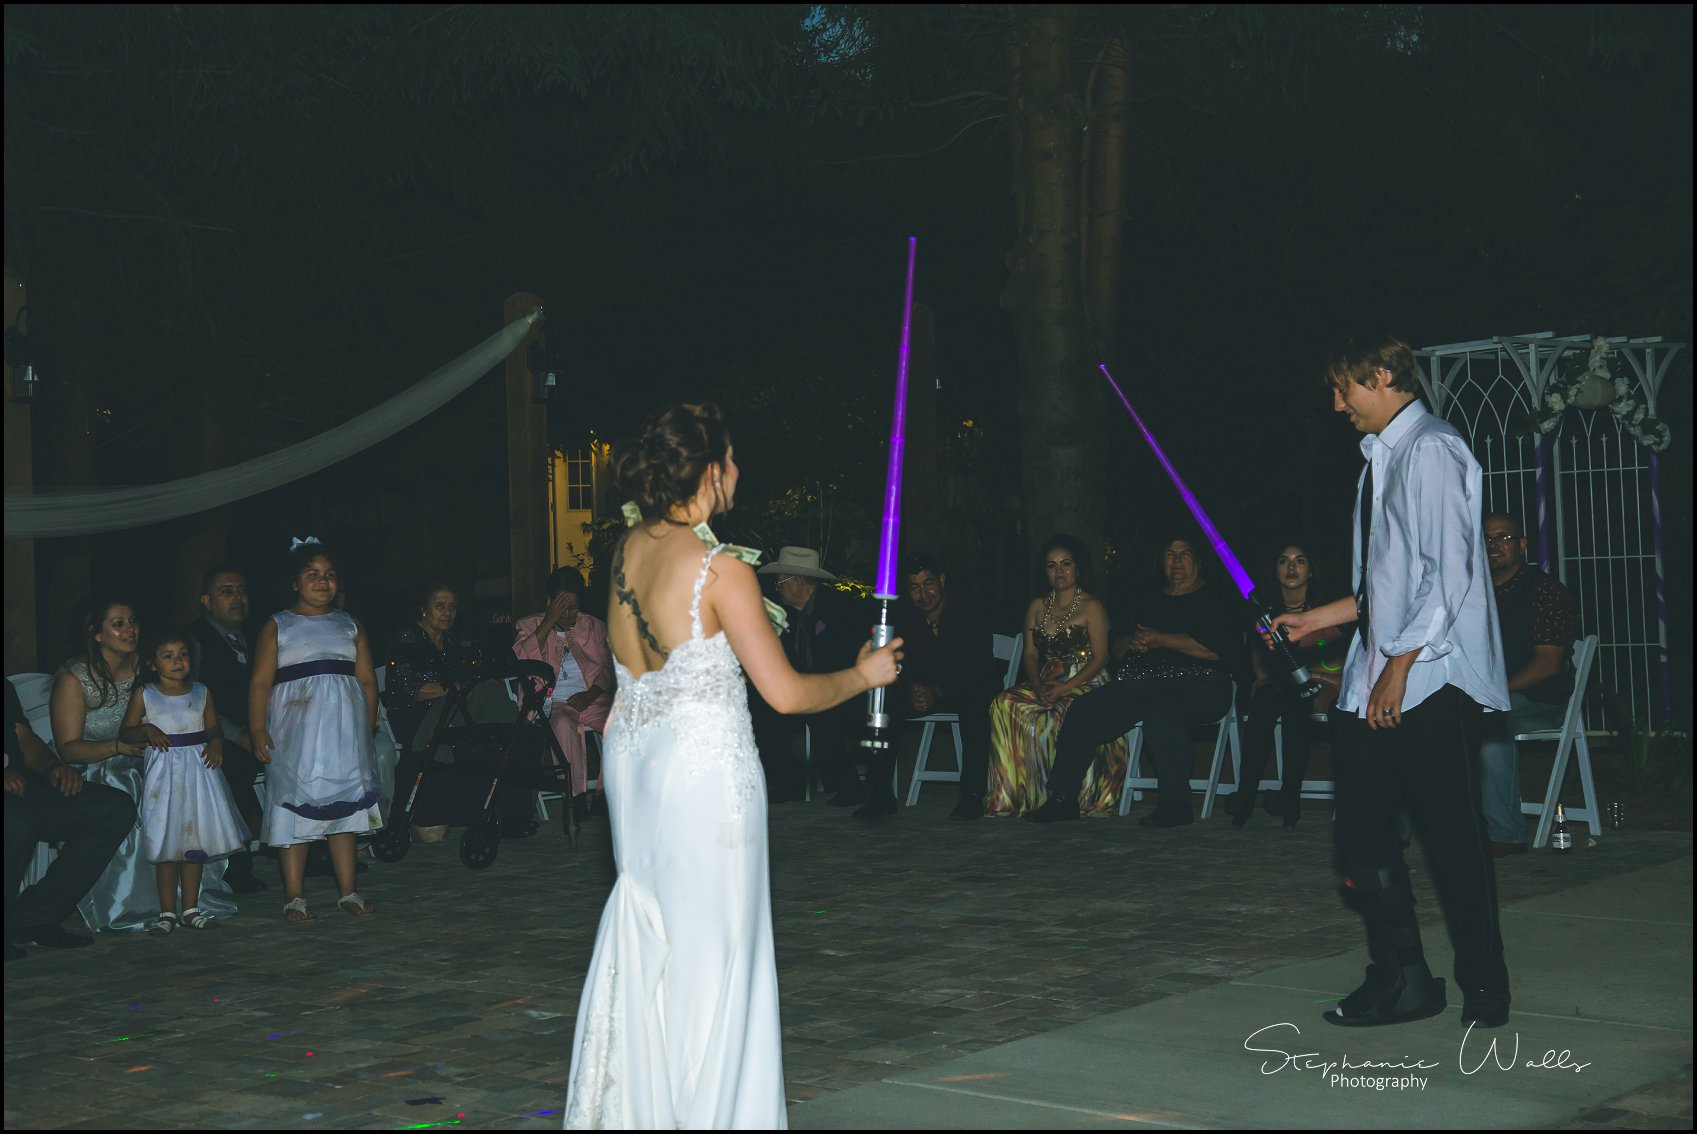 Walker Wedding001 3 Woodland Meadows   Lightsabers and Wands With Nataly and Marty